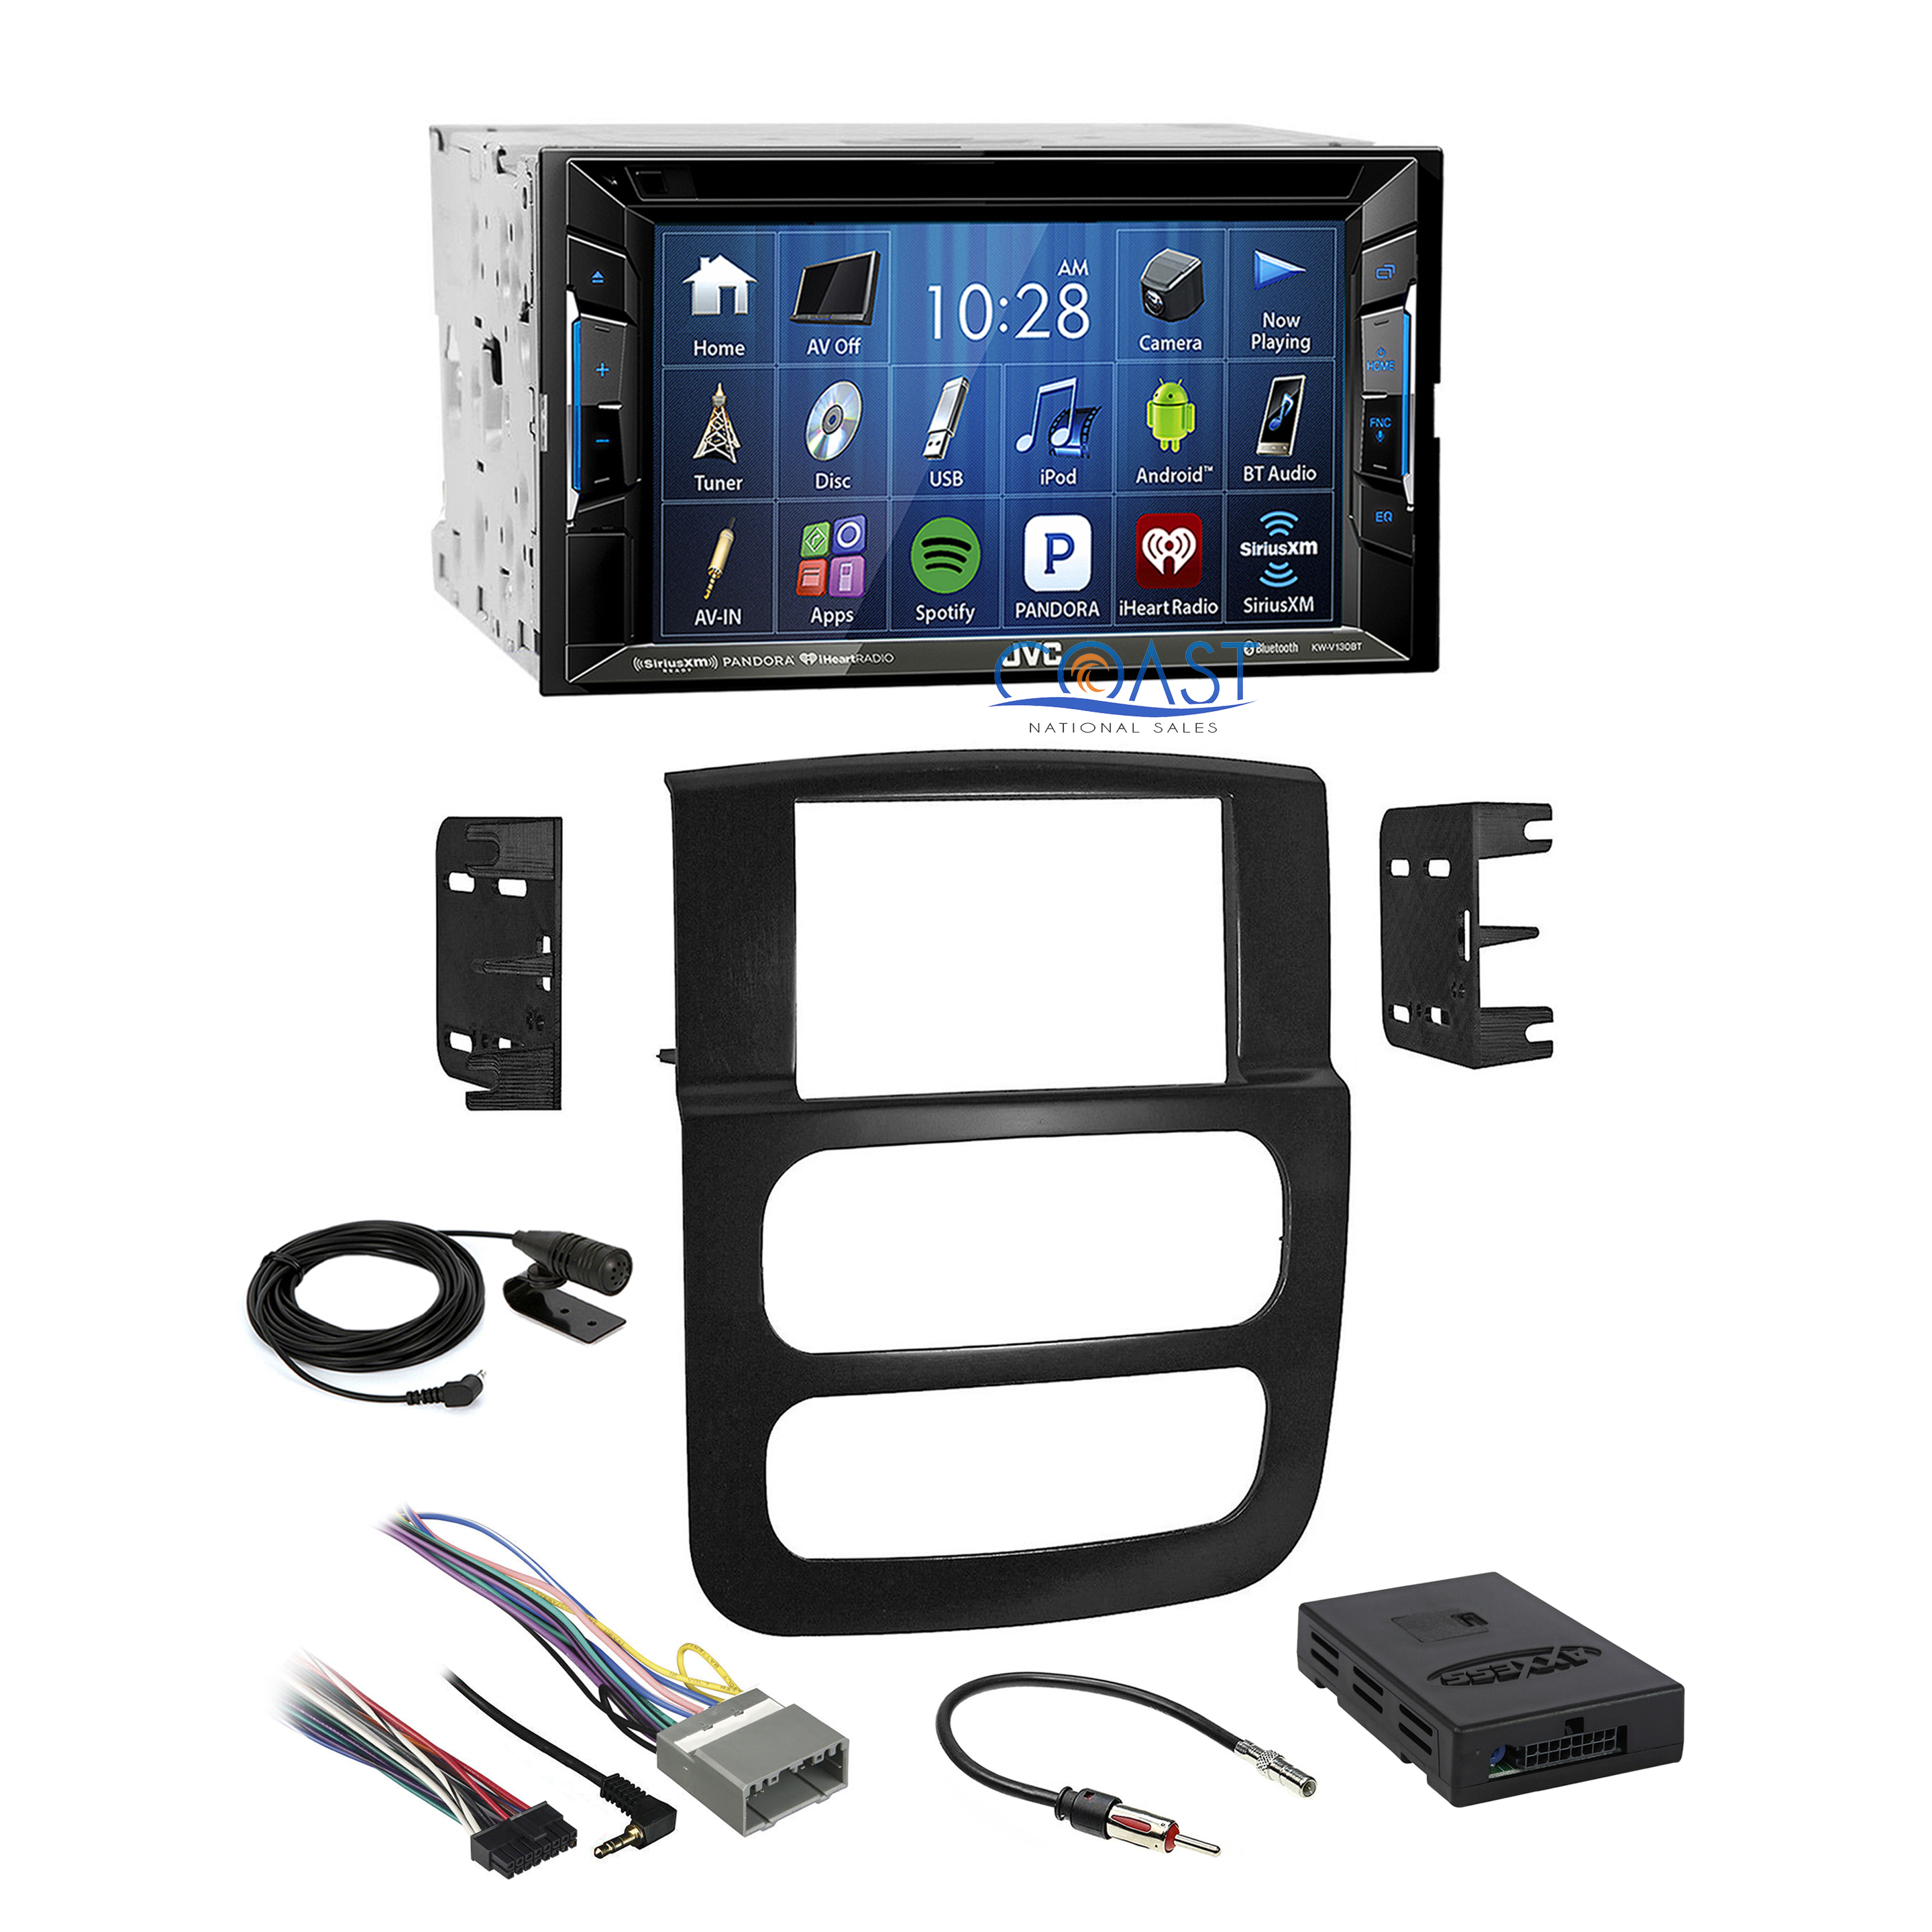 jvc car bluetooth sirius stereo dash kit amplifier harness. Black Bedroom Furniture Sets. Home Design Ideas